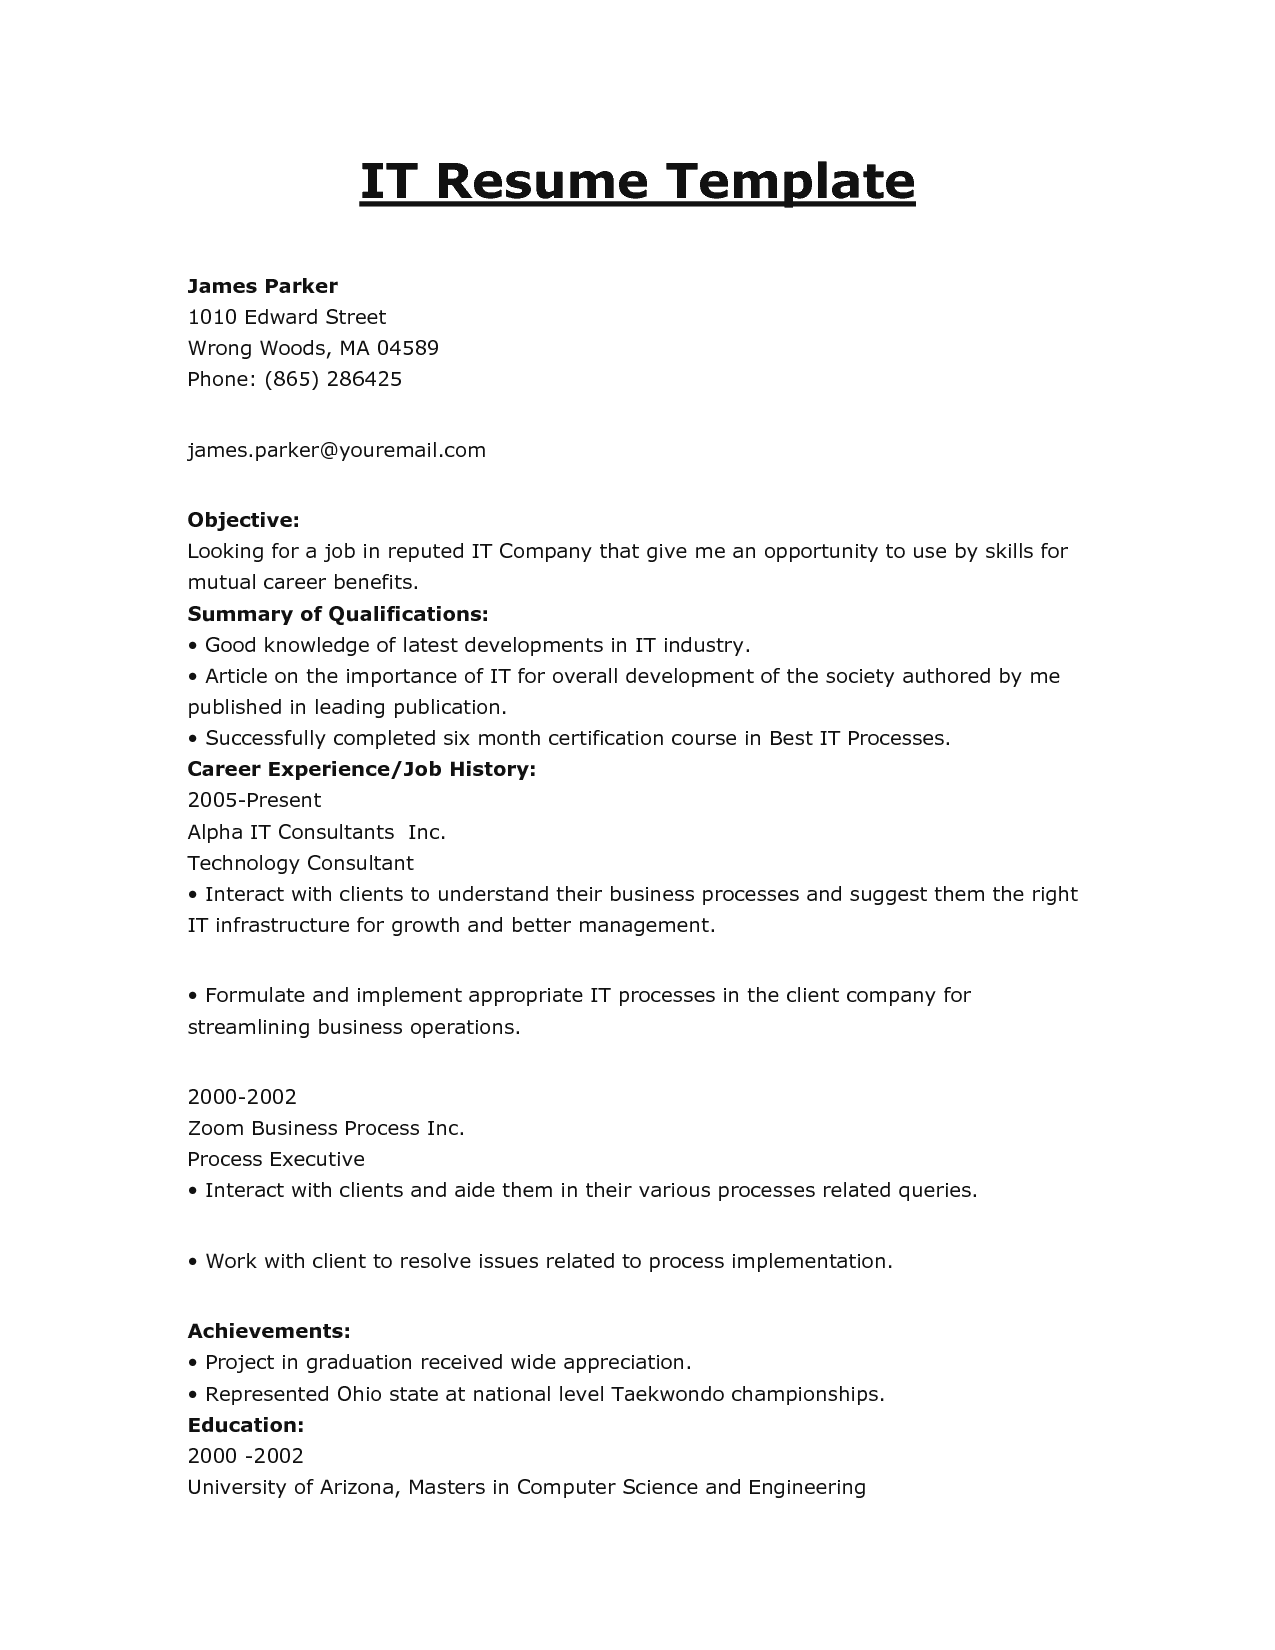 Resume Examples Top Pictures And Images Good Objectives Summary